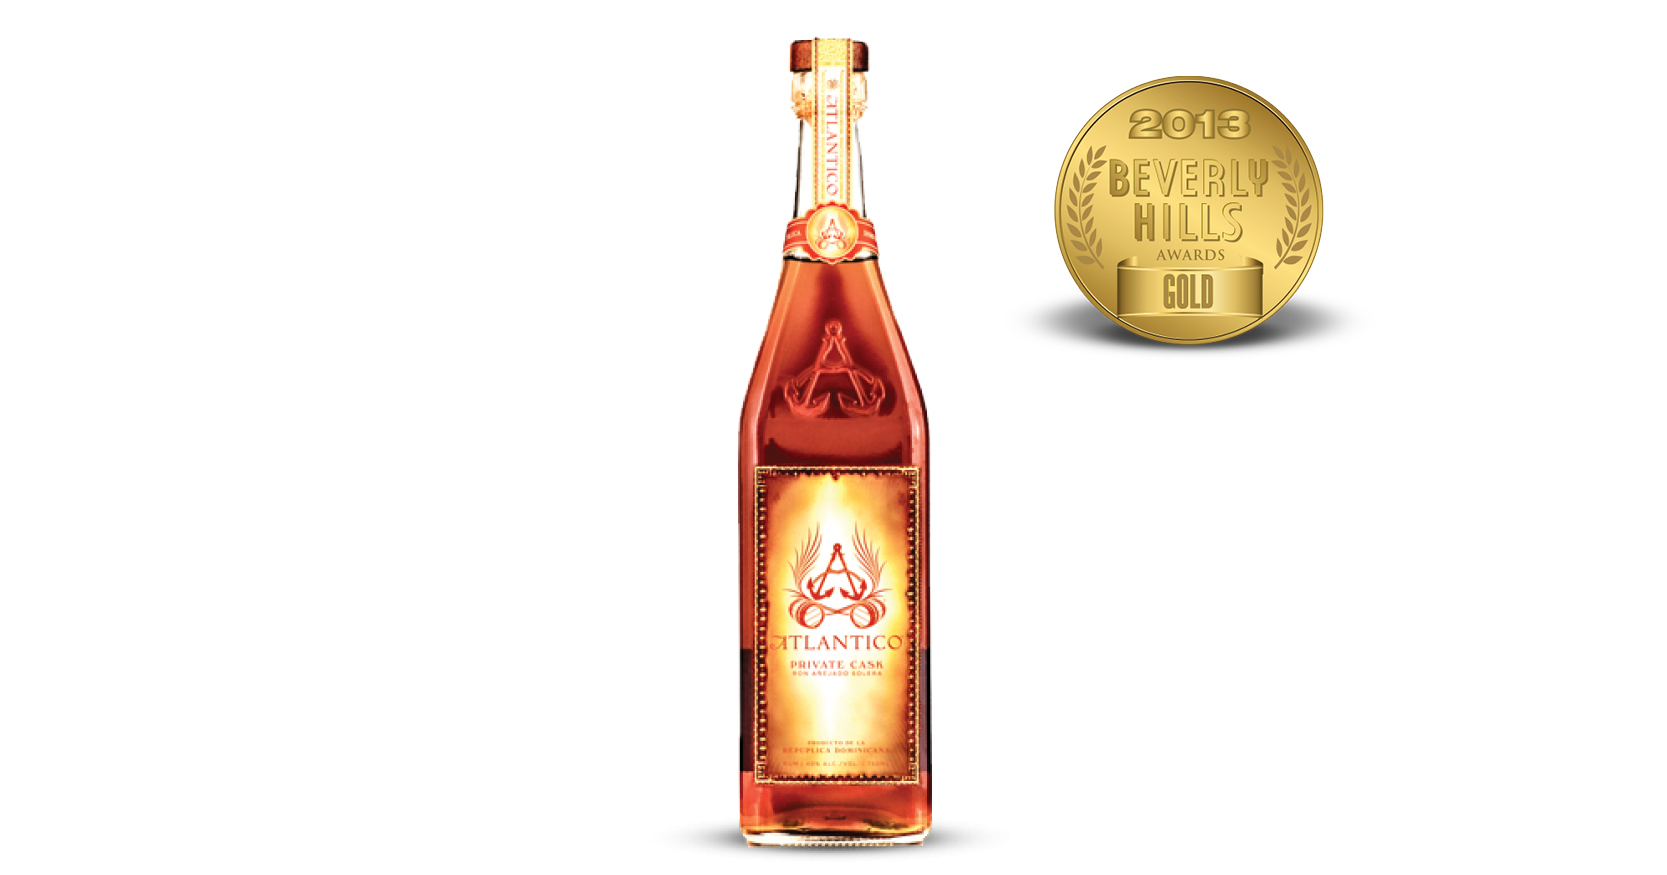 Atlantico Private Cask Rum